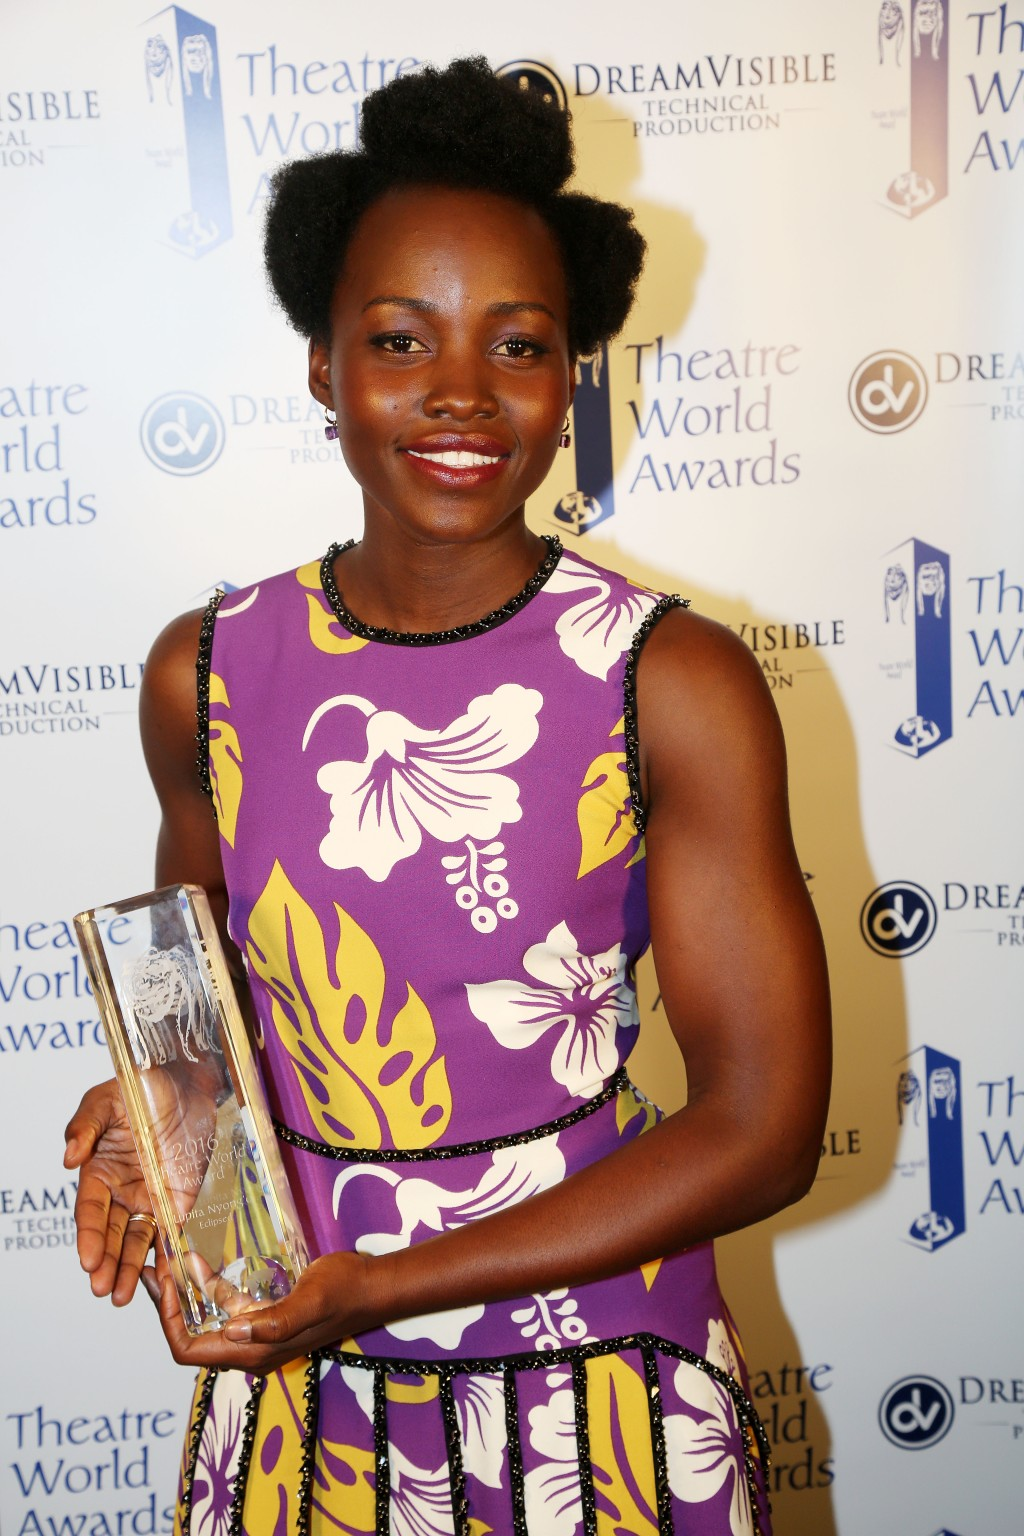 72nd Annual Theatre World Awards Ceremony